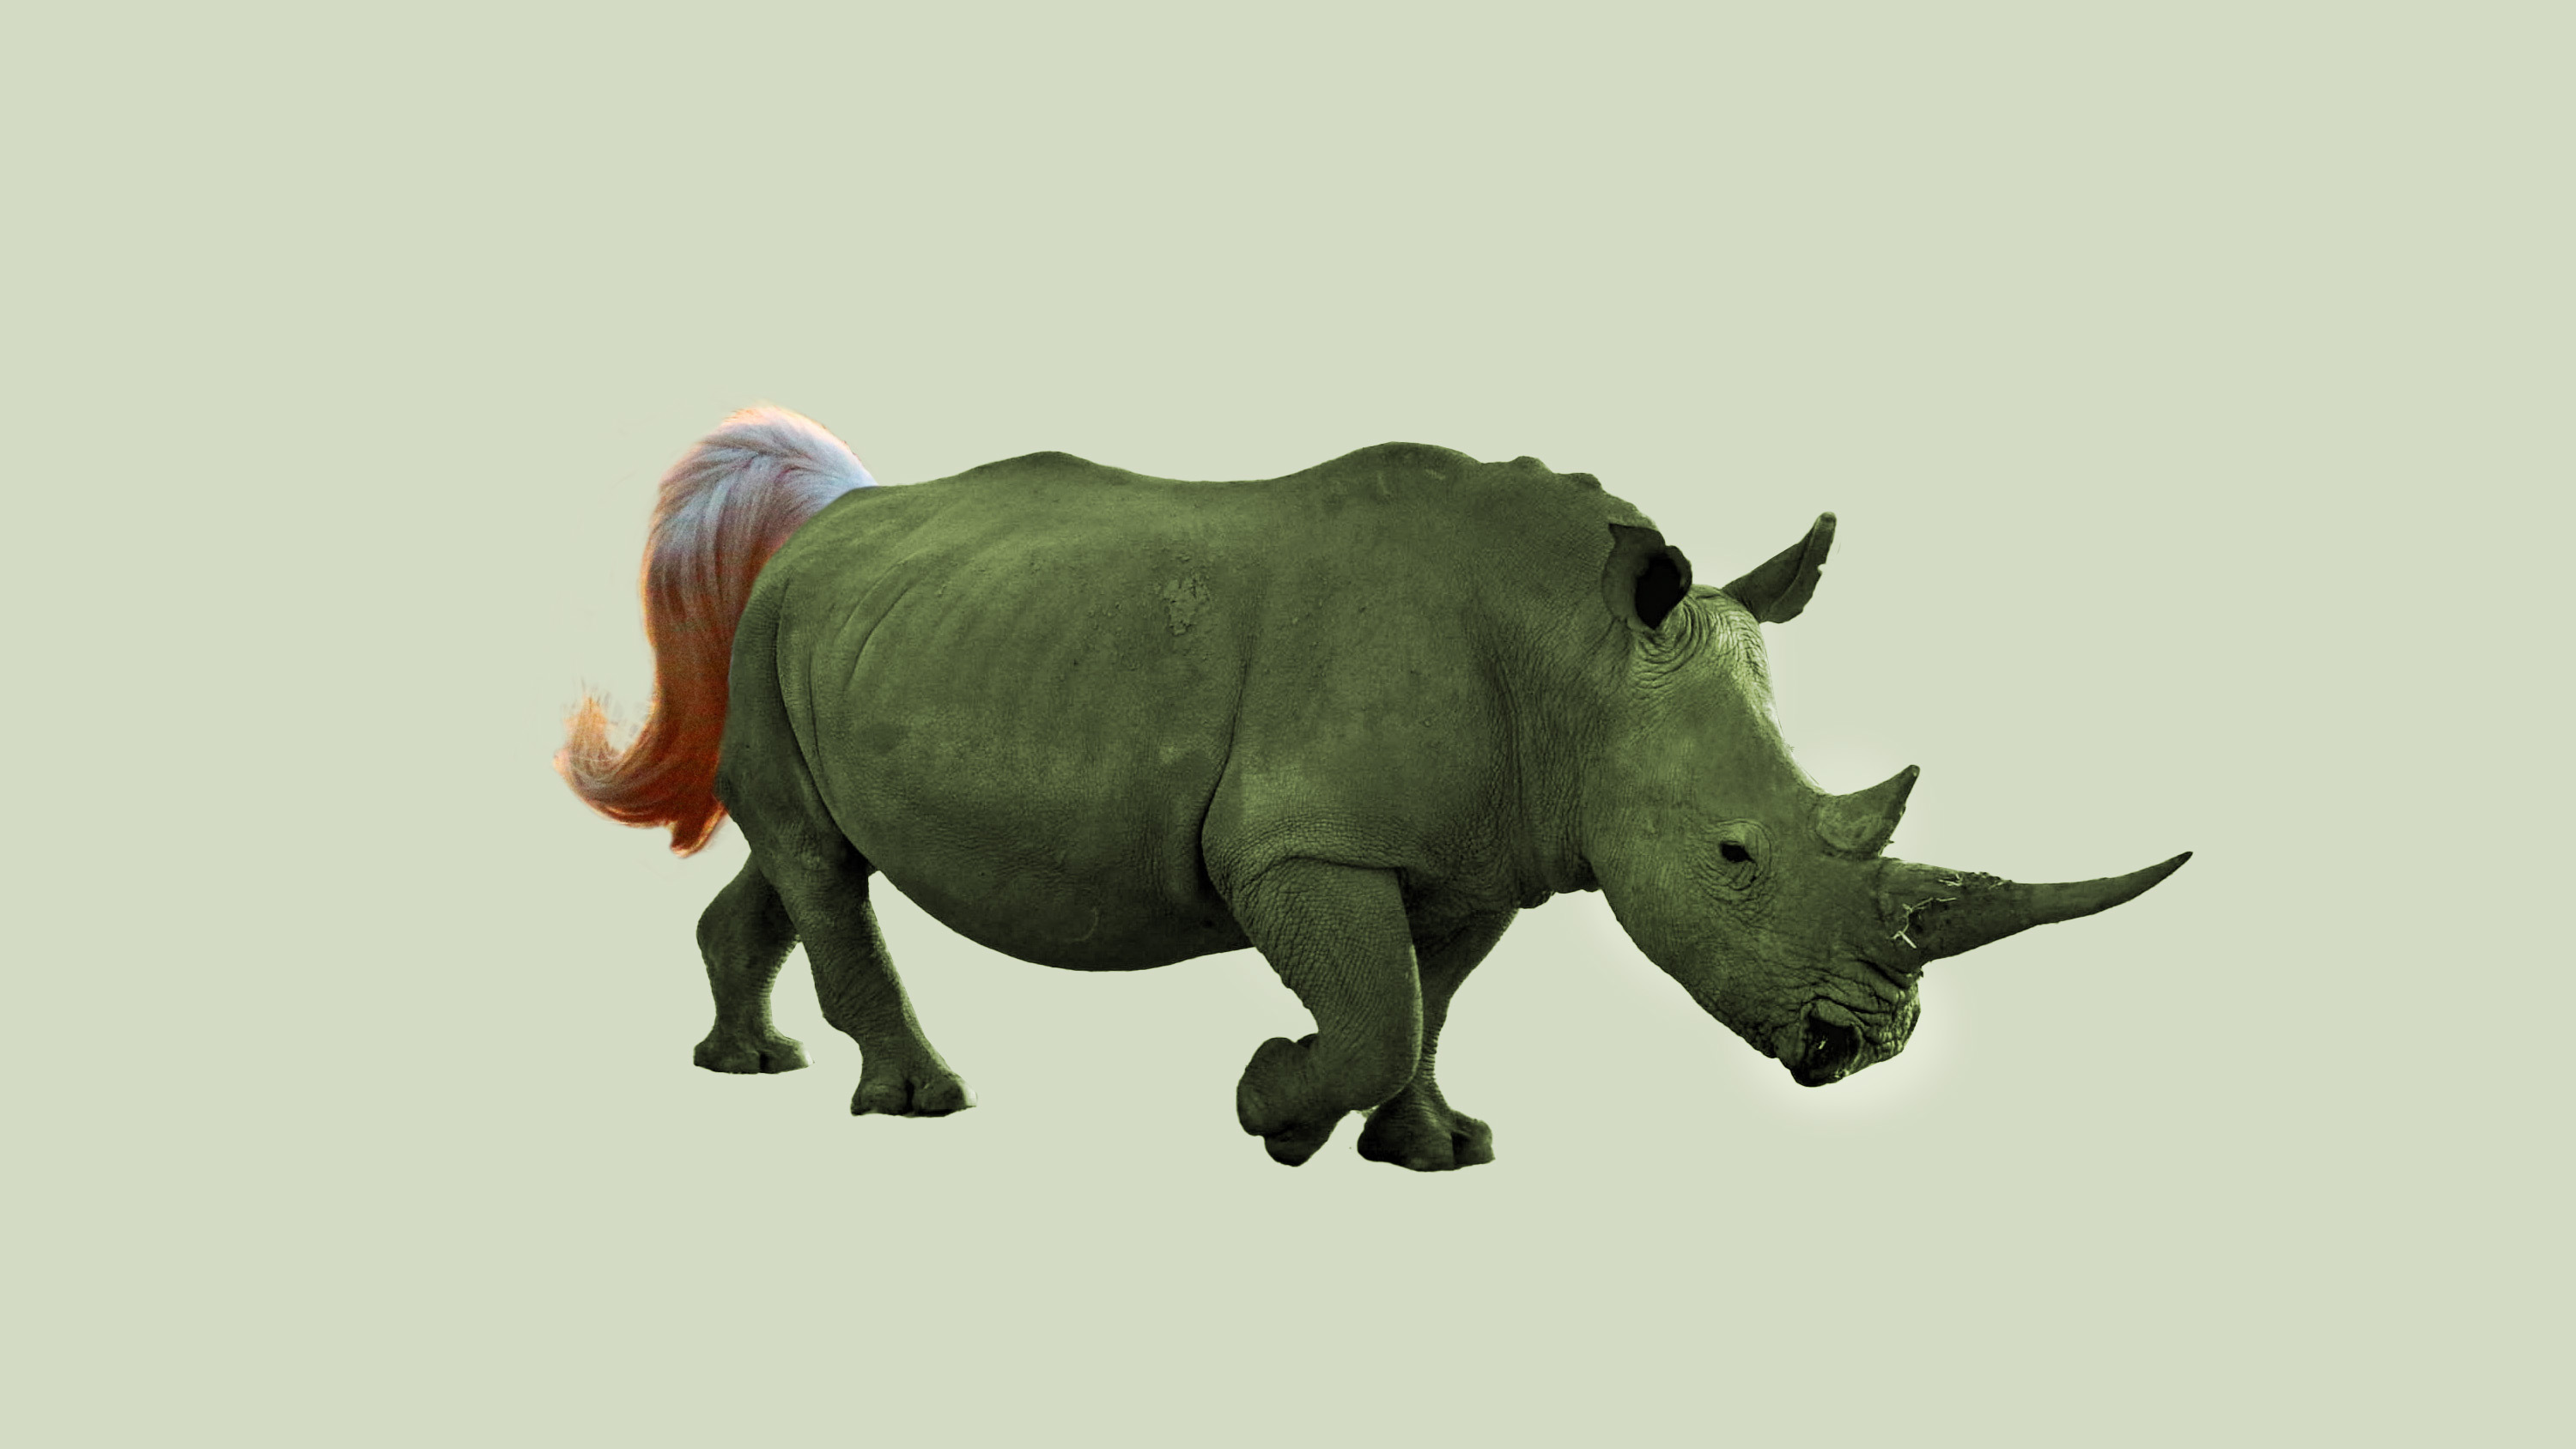 Rhinocorn, a cross between a rhino and unicorn